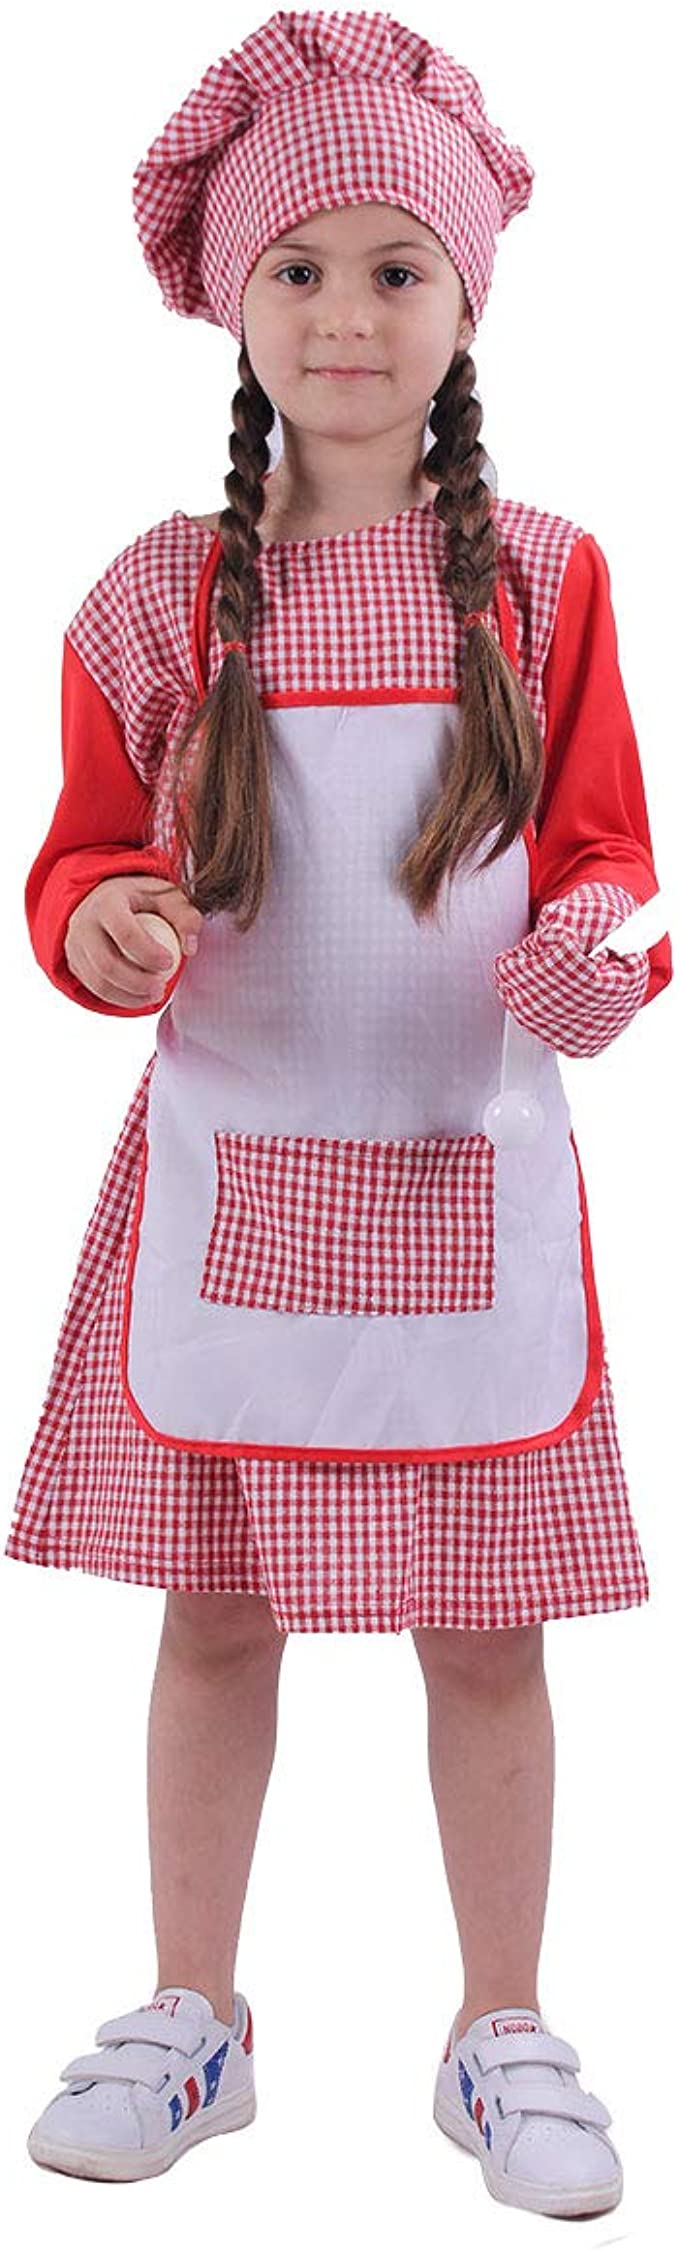 Giakool Kids Chef Costume Toddler Christmas Girls Role Play Set Including Chef Dress, Hat, Mitten and Apron, Age 3-10